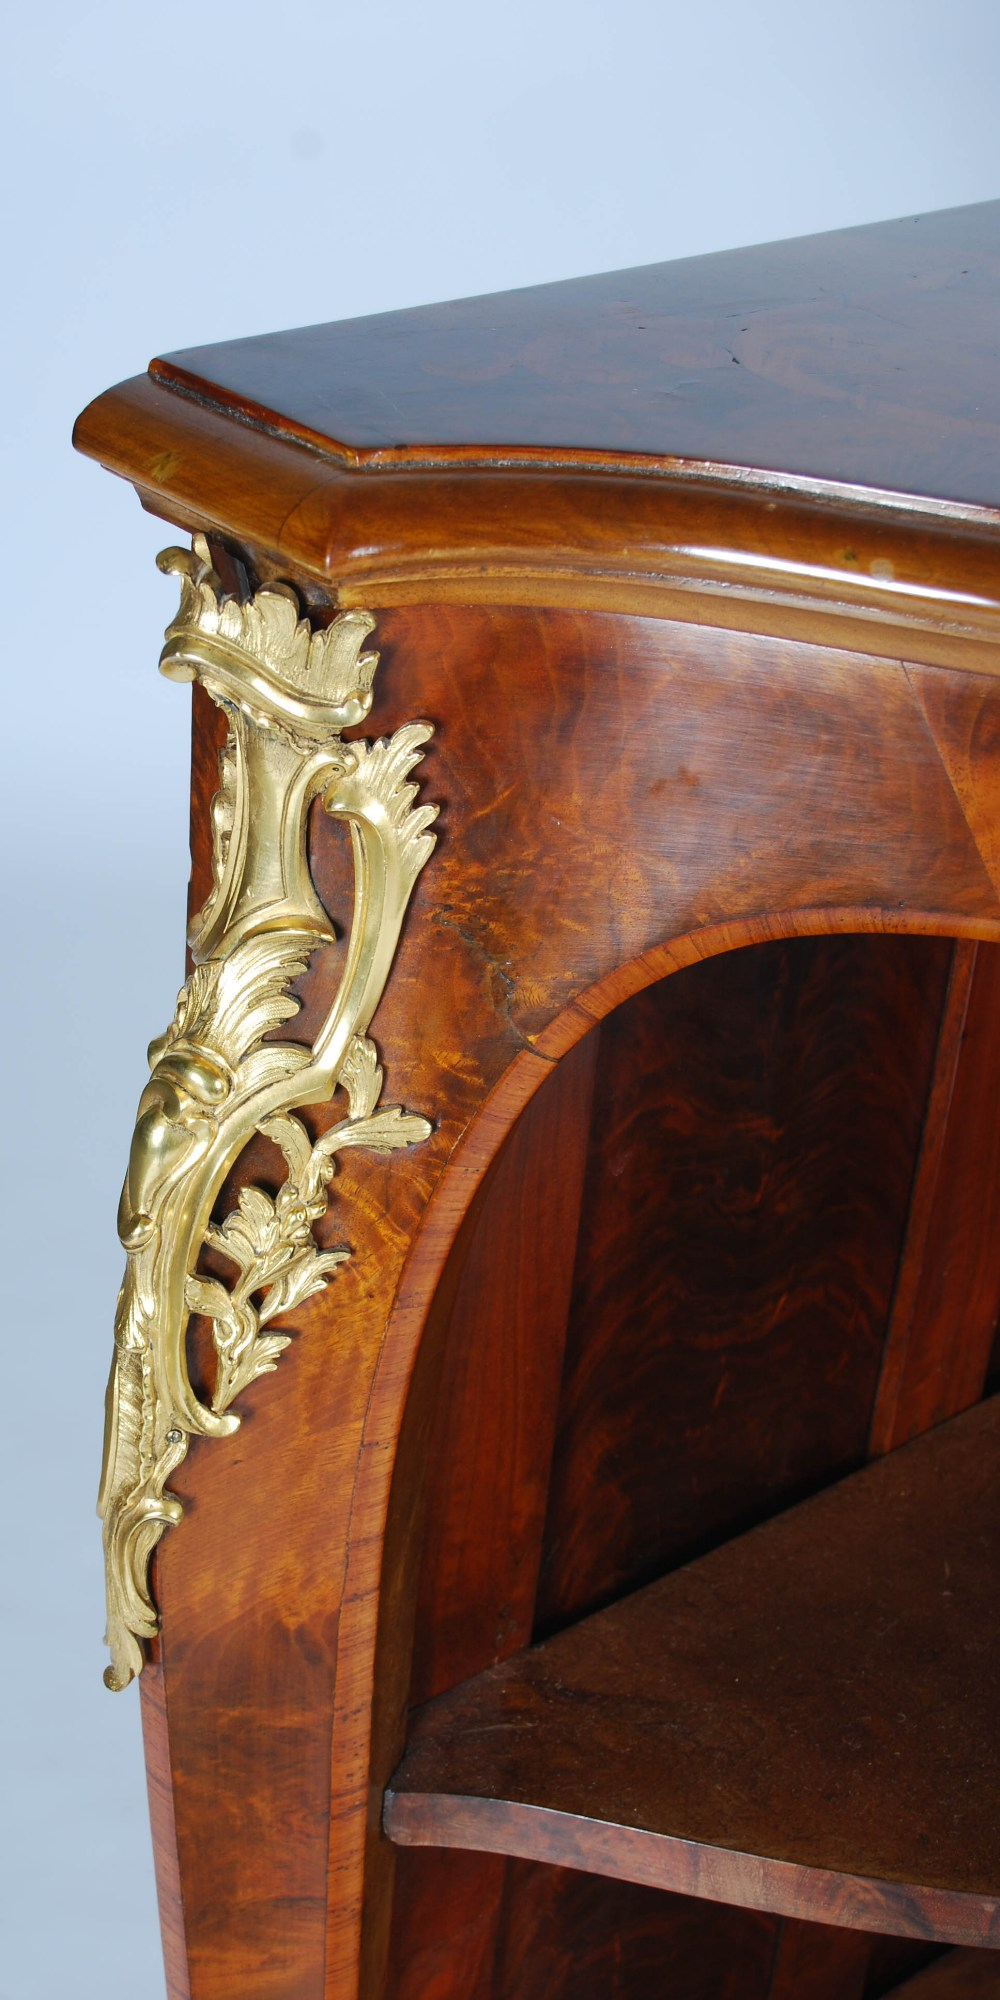 Lot 98 - A French mahogany, marquetry and gilt metal mounted open bookcase in the Louis XV style, the